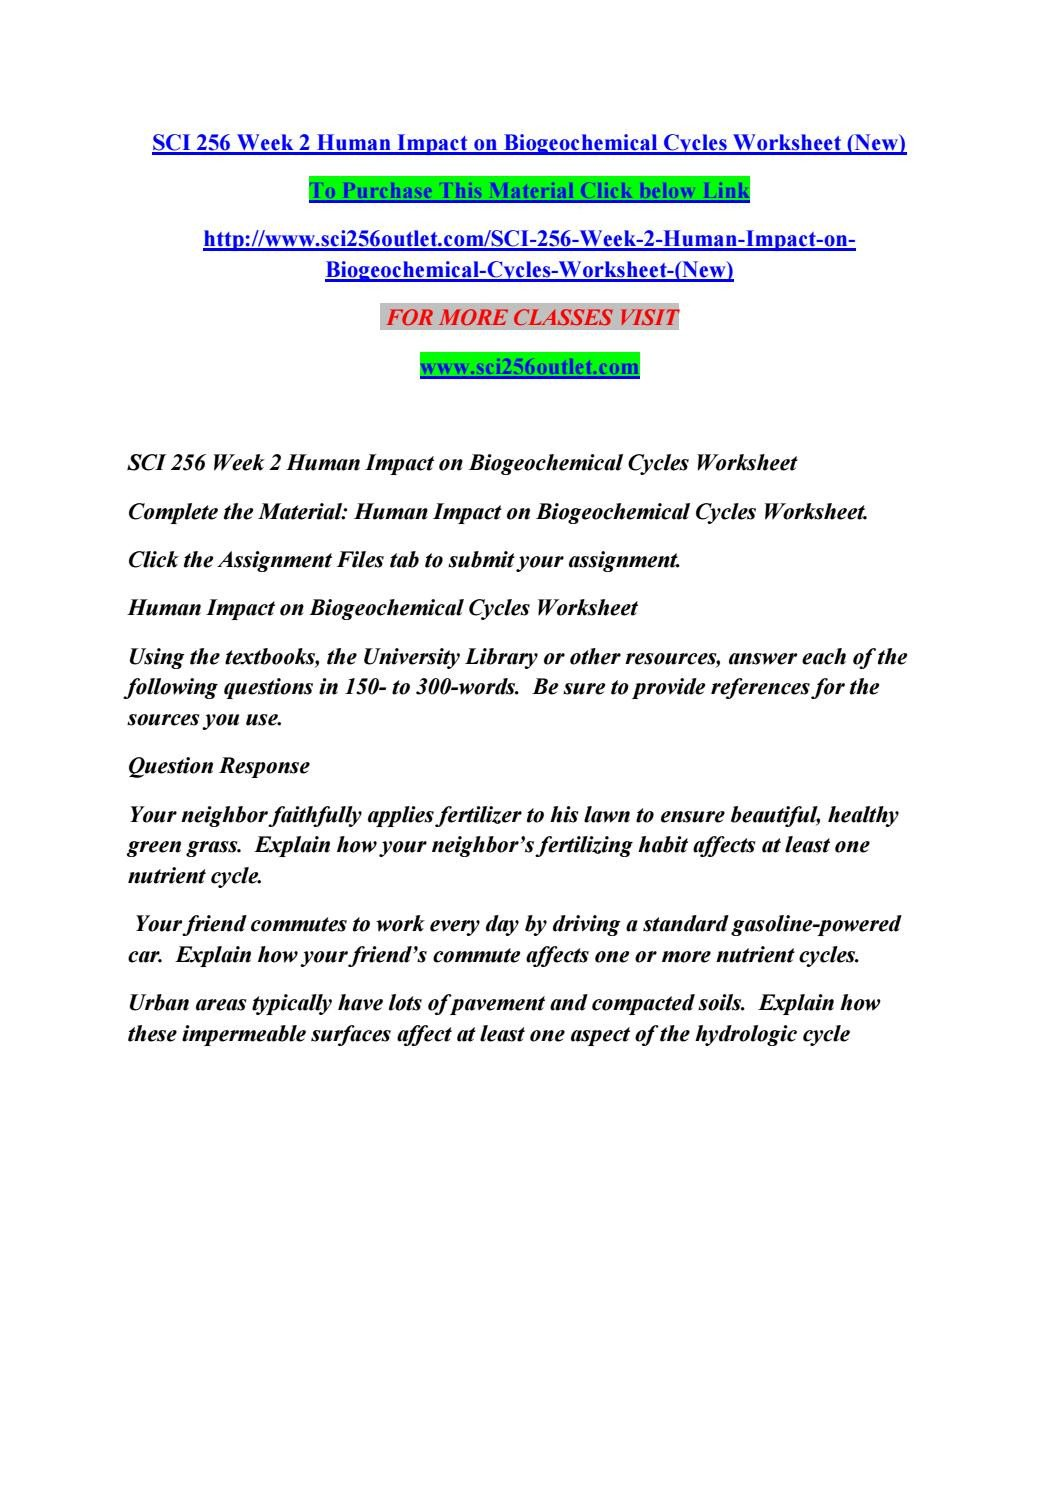 Integrated Science Cycles Worksheet Answers Sci 256 Week 2 Human Impact On Biogeochemical Cycles